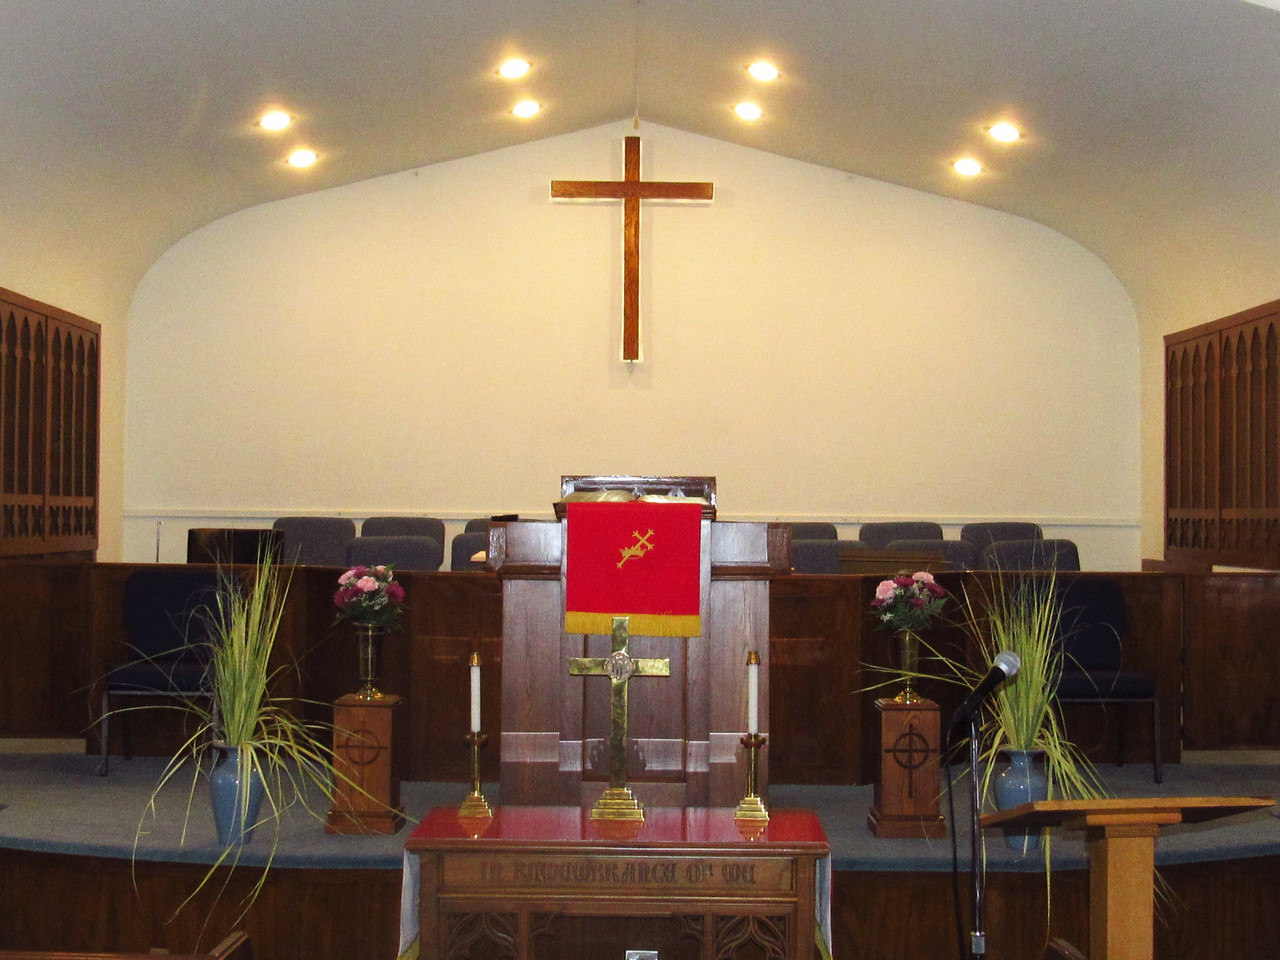 The Sanctuary, decorated for Palm Sunday.